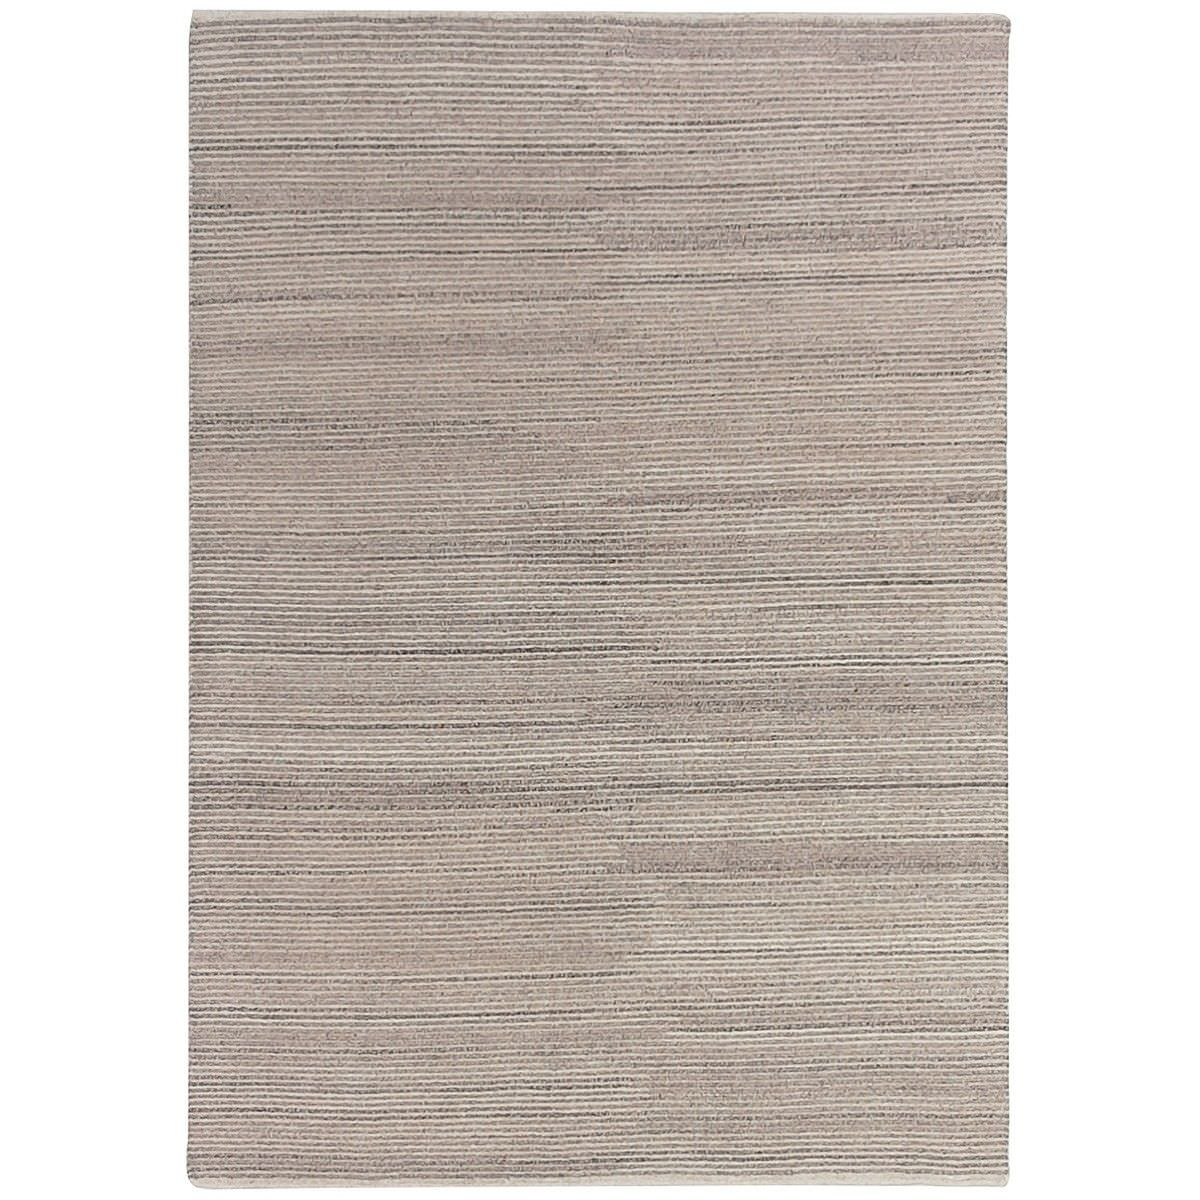 Boheme Hand Tufted Wool Rug, 250x300cm, Natural